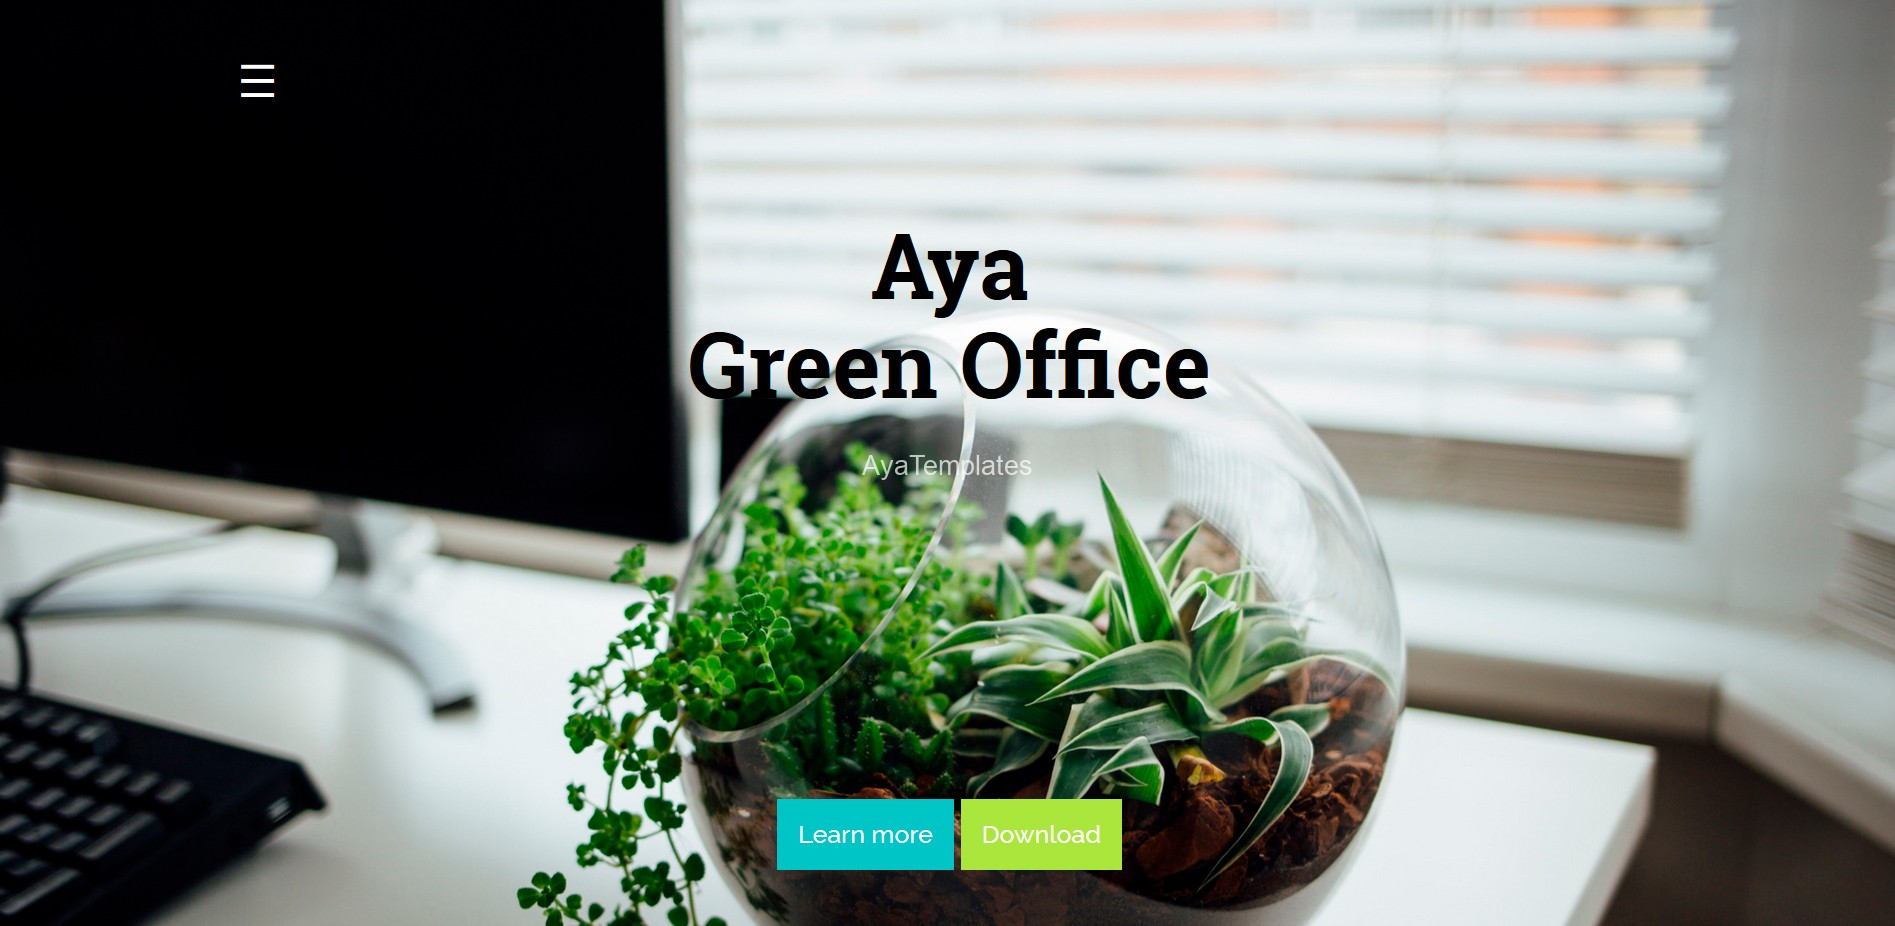 AyaGreenOffice-product-image1